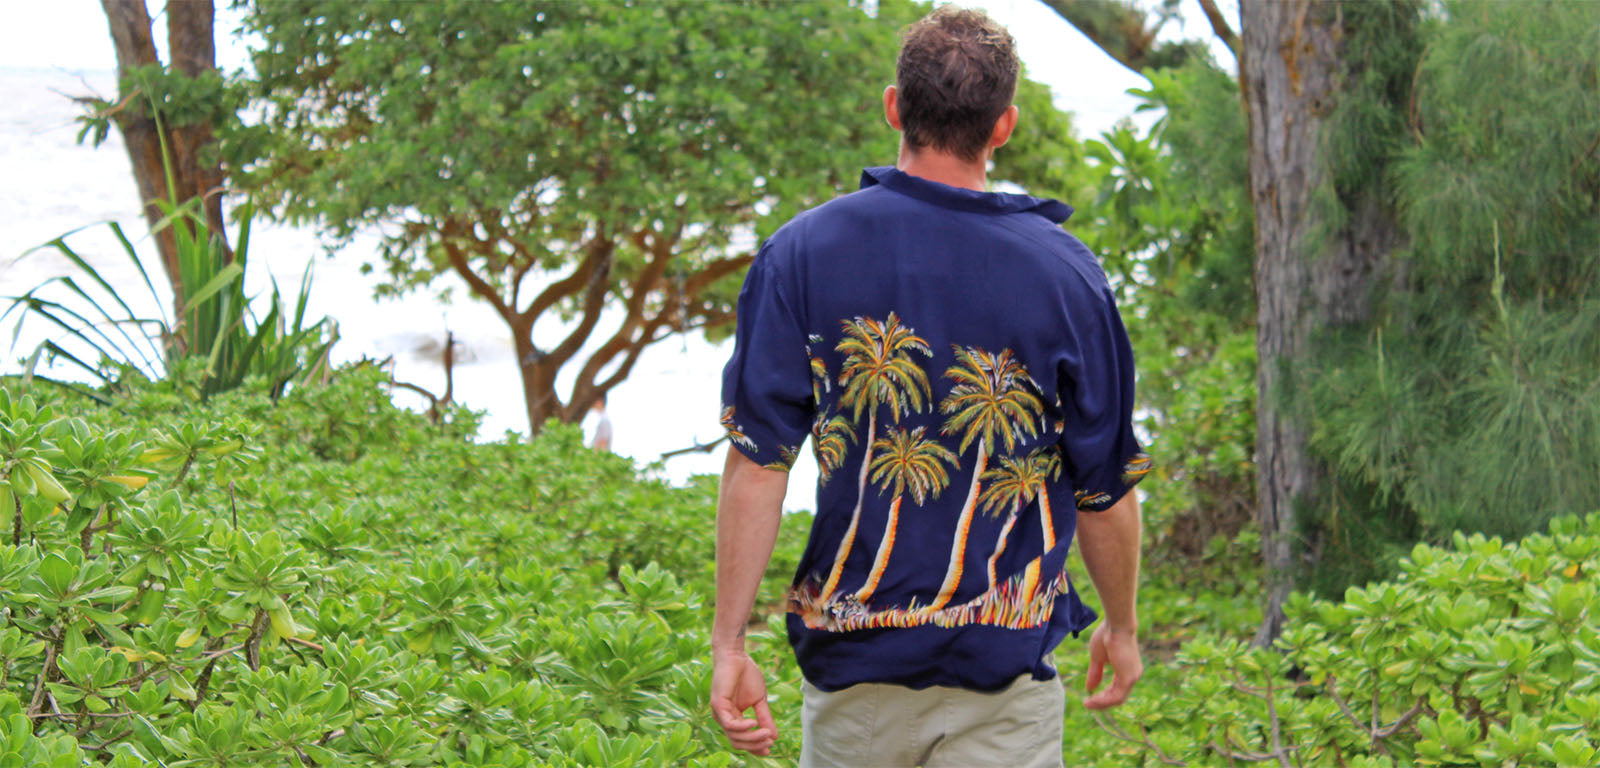 Retro Vintage-Inspired Aloha Shirts